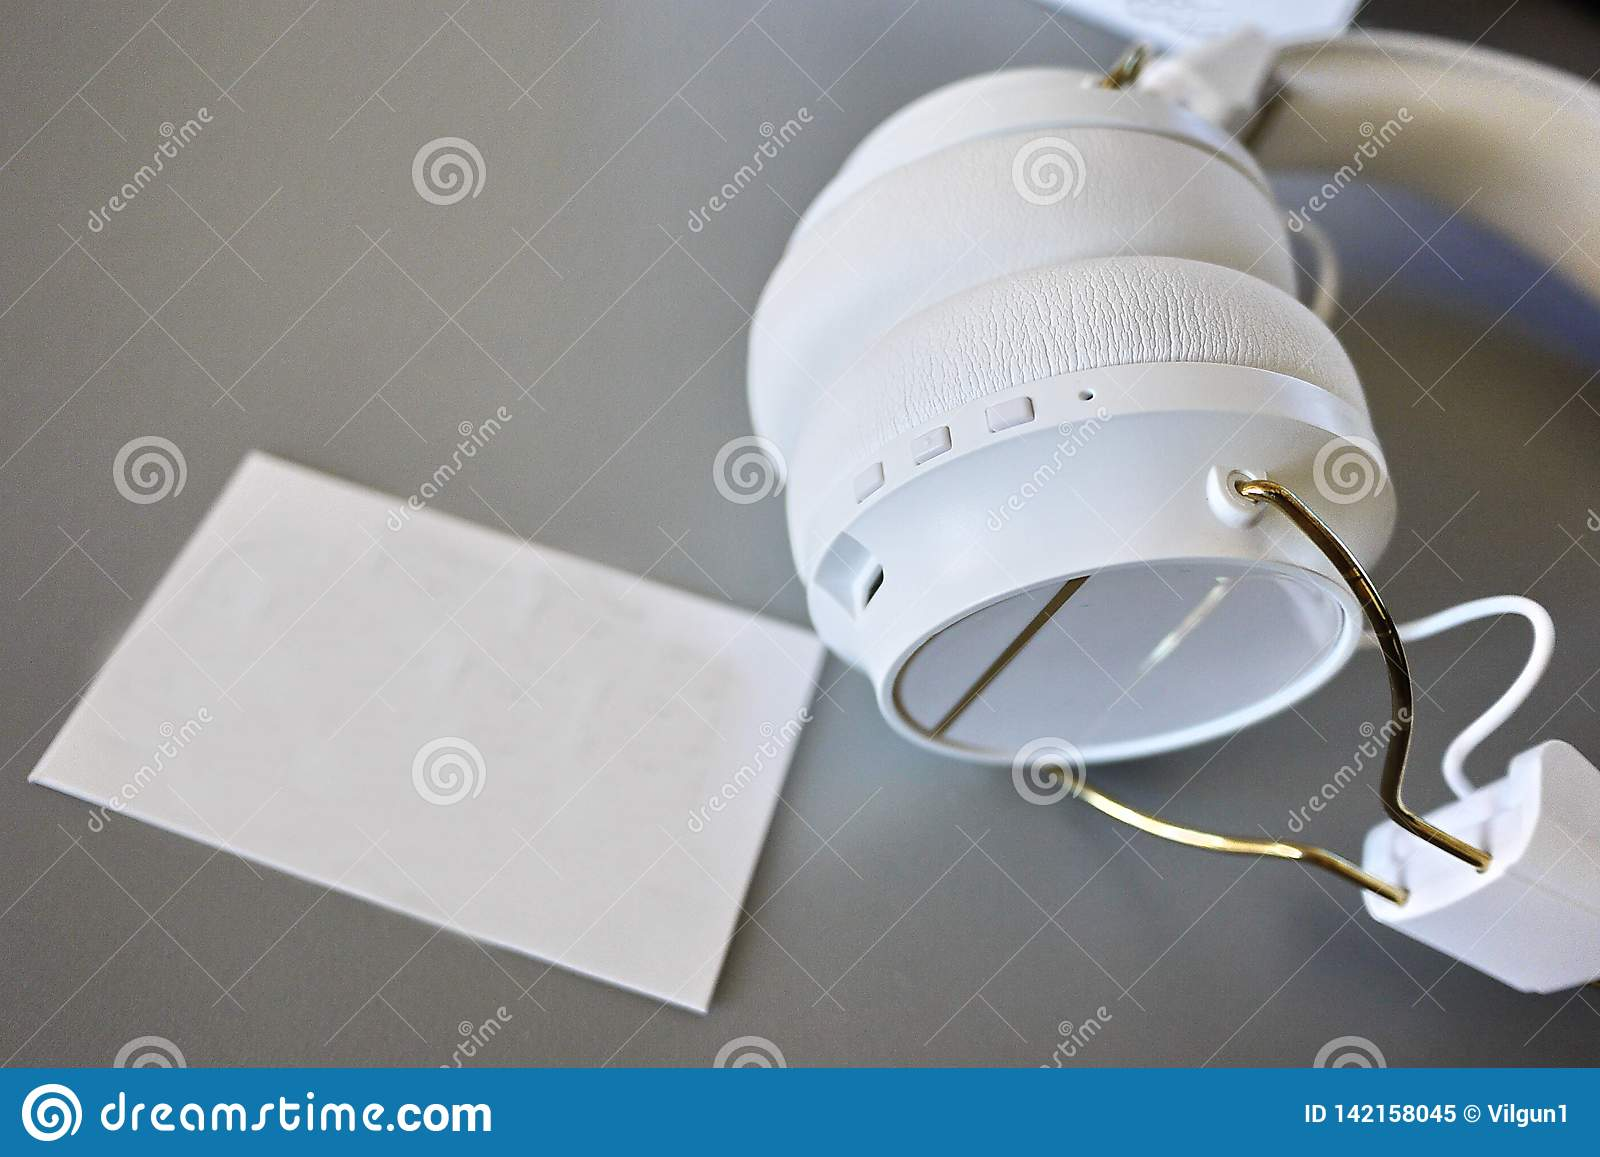 Small Bluetooth headphones, white color, close-up